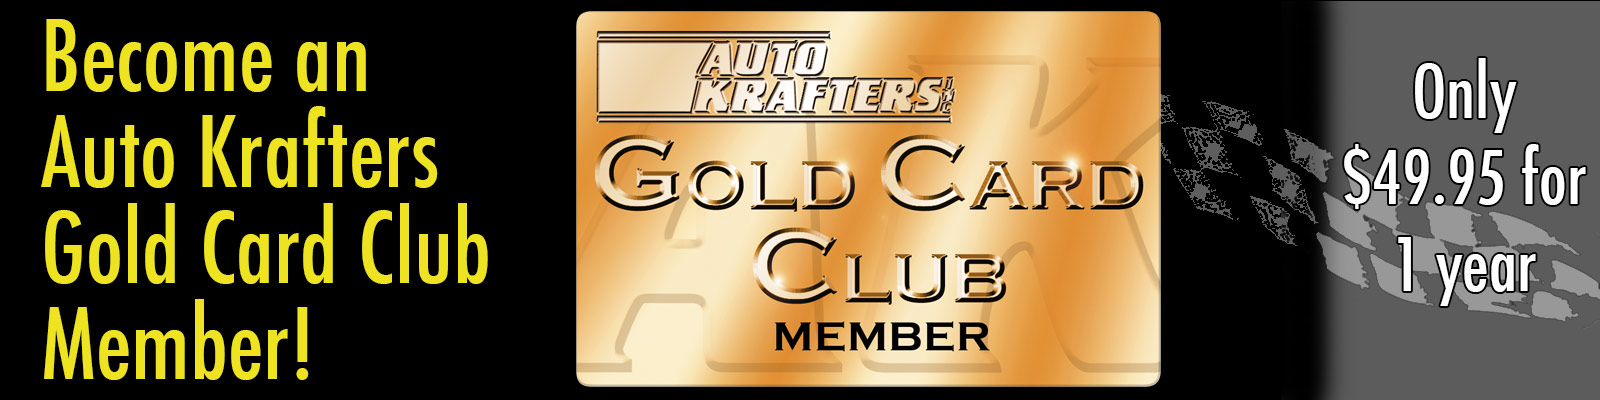 Become an Auto Krafters Gold Card Club Member